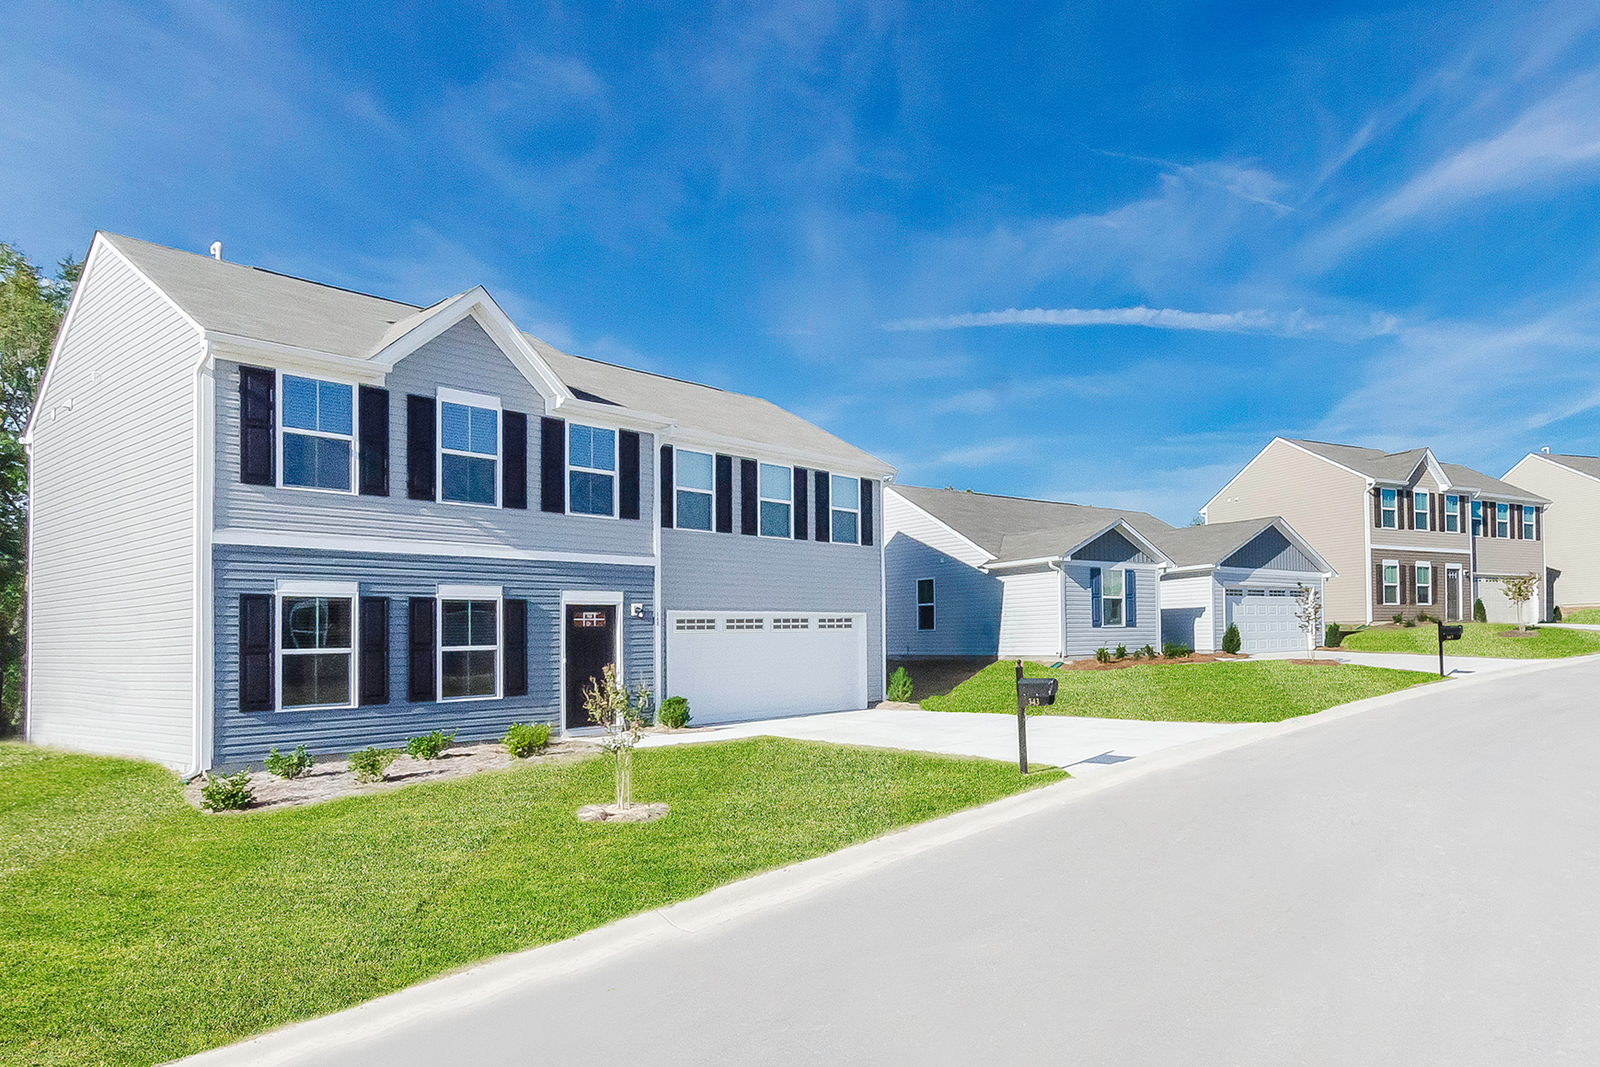 New Homes for sale at Magnolia Creek in Durham NC within the Durham